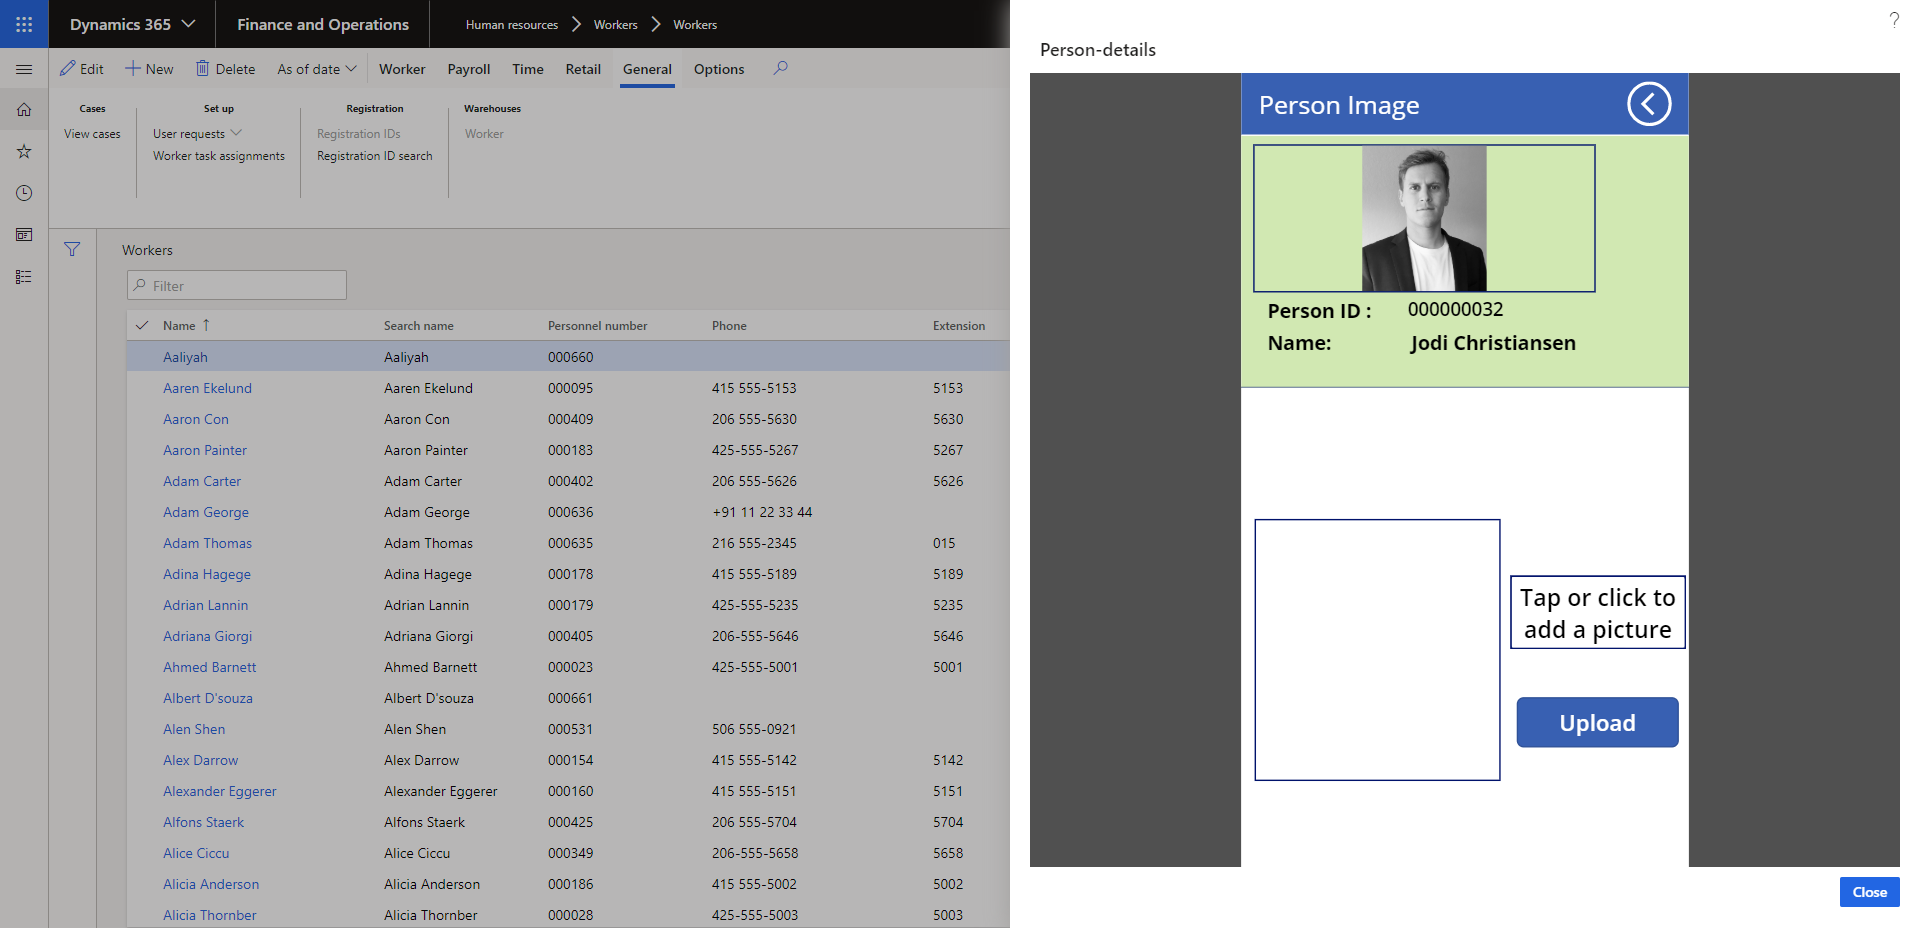 How to upload a profile picture on Microsoft Power Platform